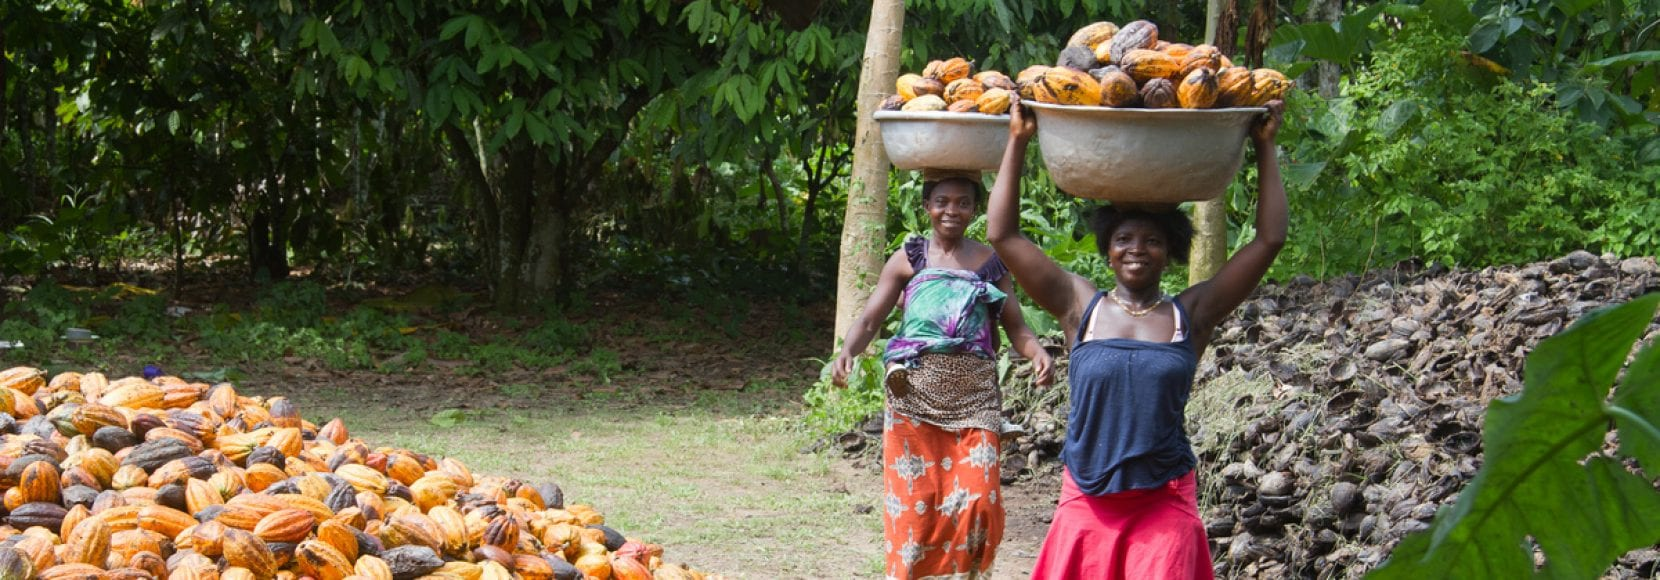 These womeTechnoServe's business solutions to poverty help enterprising people worldwide, like these women seen carrying cocoa in Cote D'Ivoire